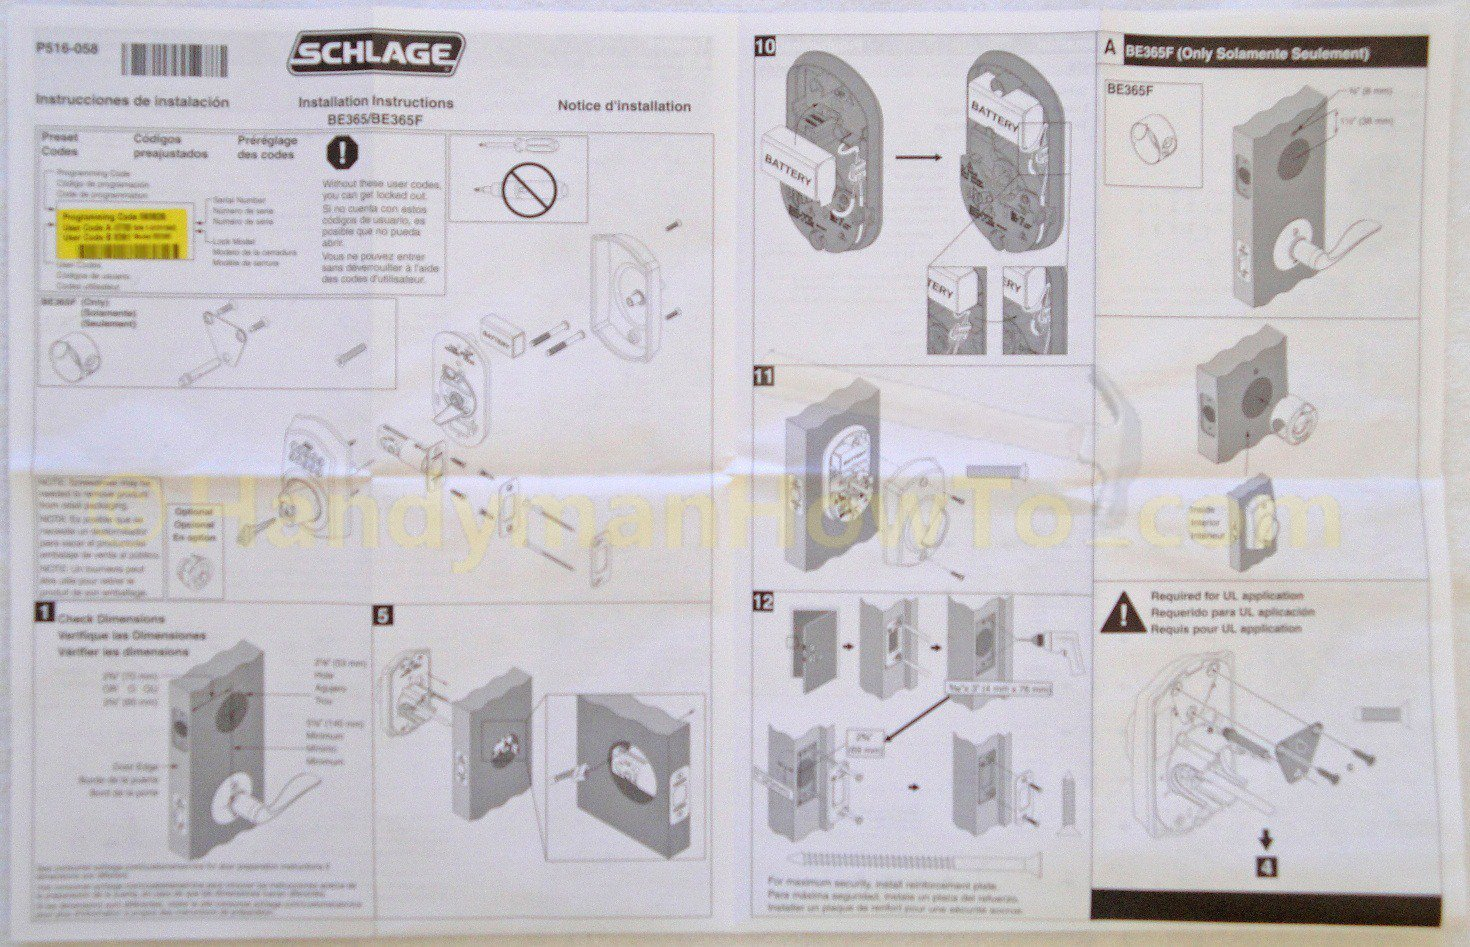 Deadbolt Installation Template How to Install A Schlage Keypad Deadbolt